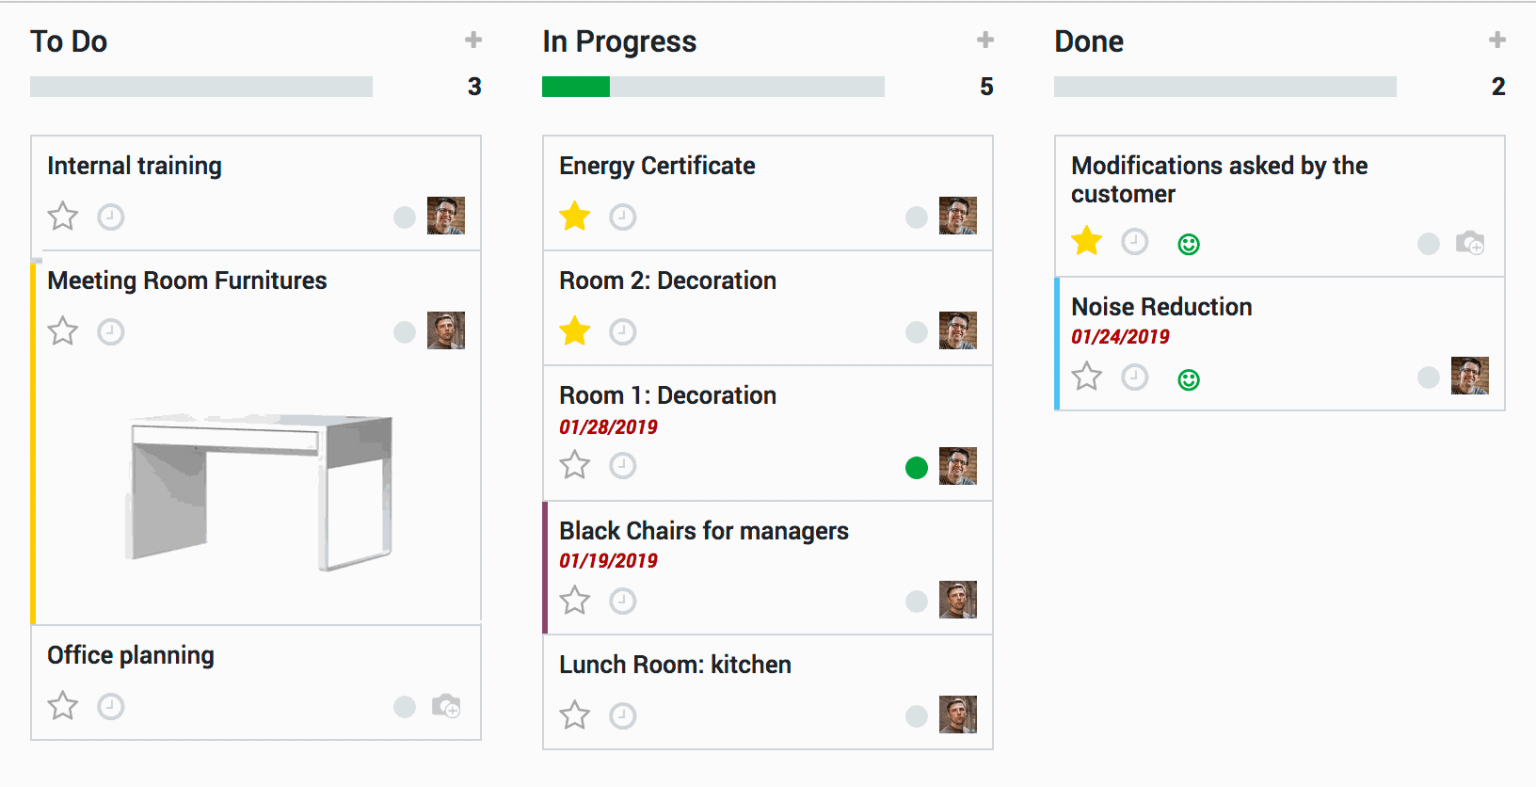 Project Management - image Projects-To-Do-1536x787-1 on https://jemili.com